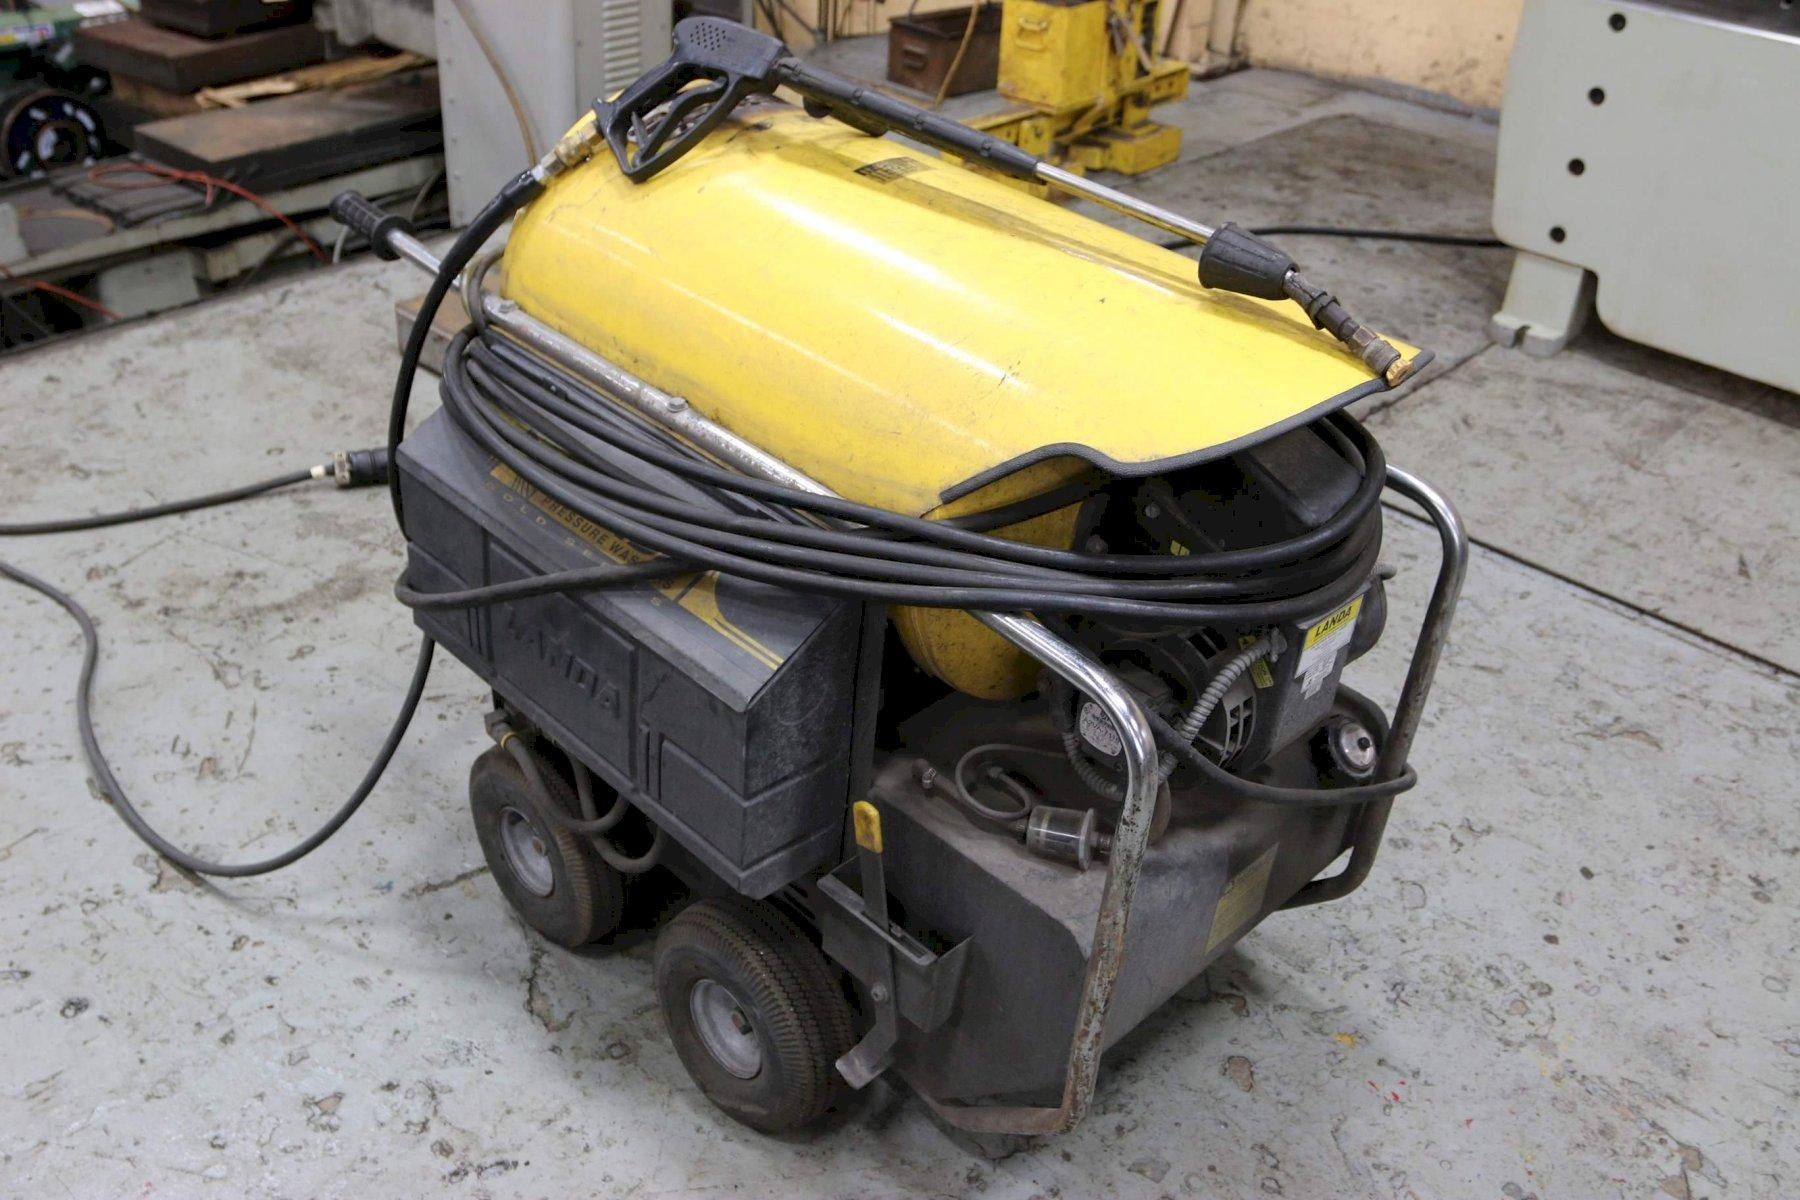 LANDA PRESSURE WASHER: STOCK #69174